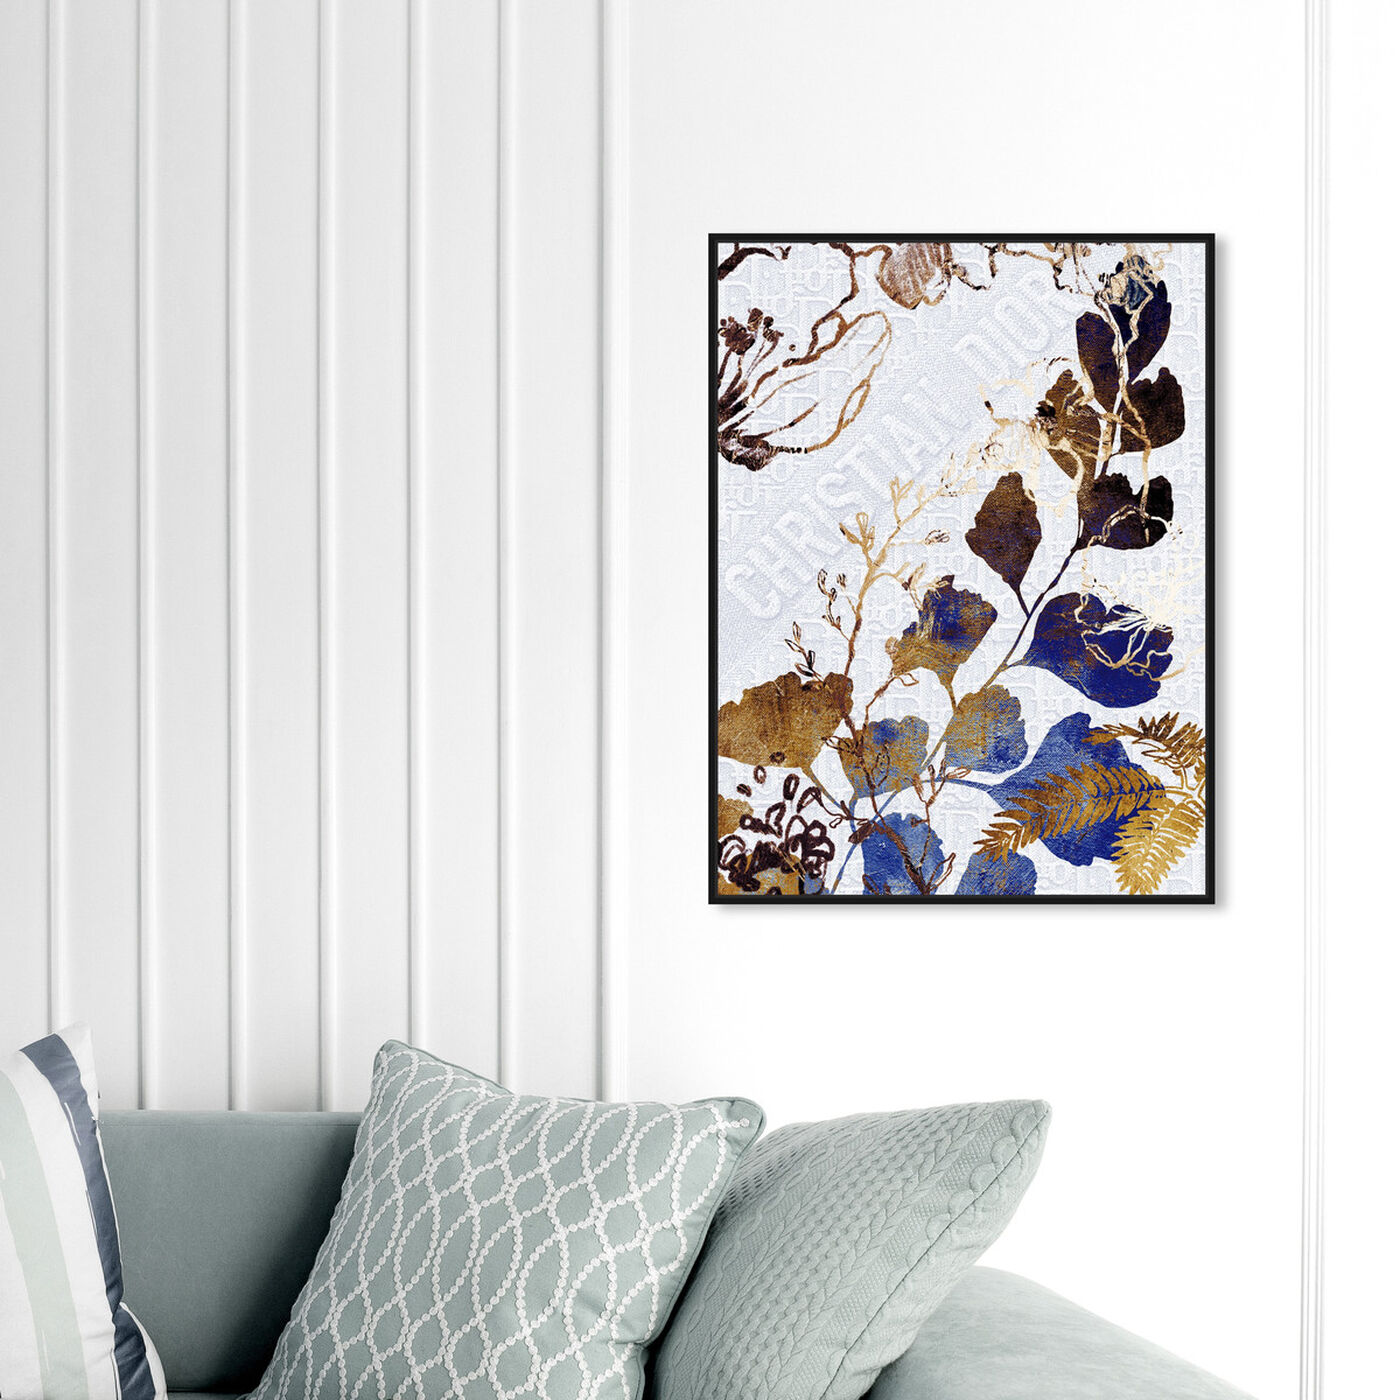 Hanging view of Indigo Blue Dreams featuring floral and botanical and botanicals art.